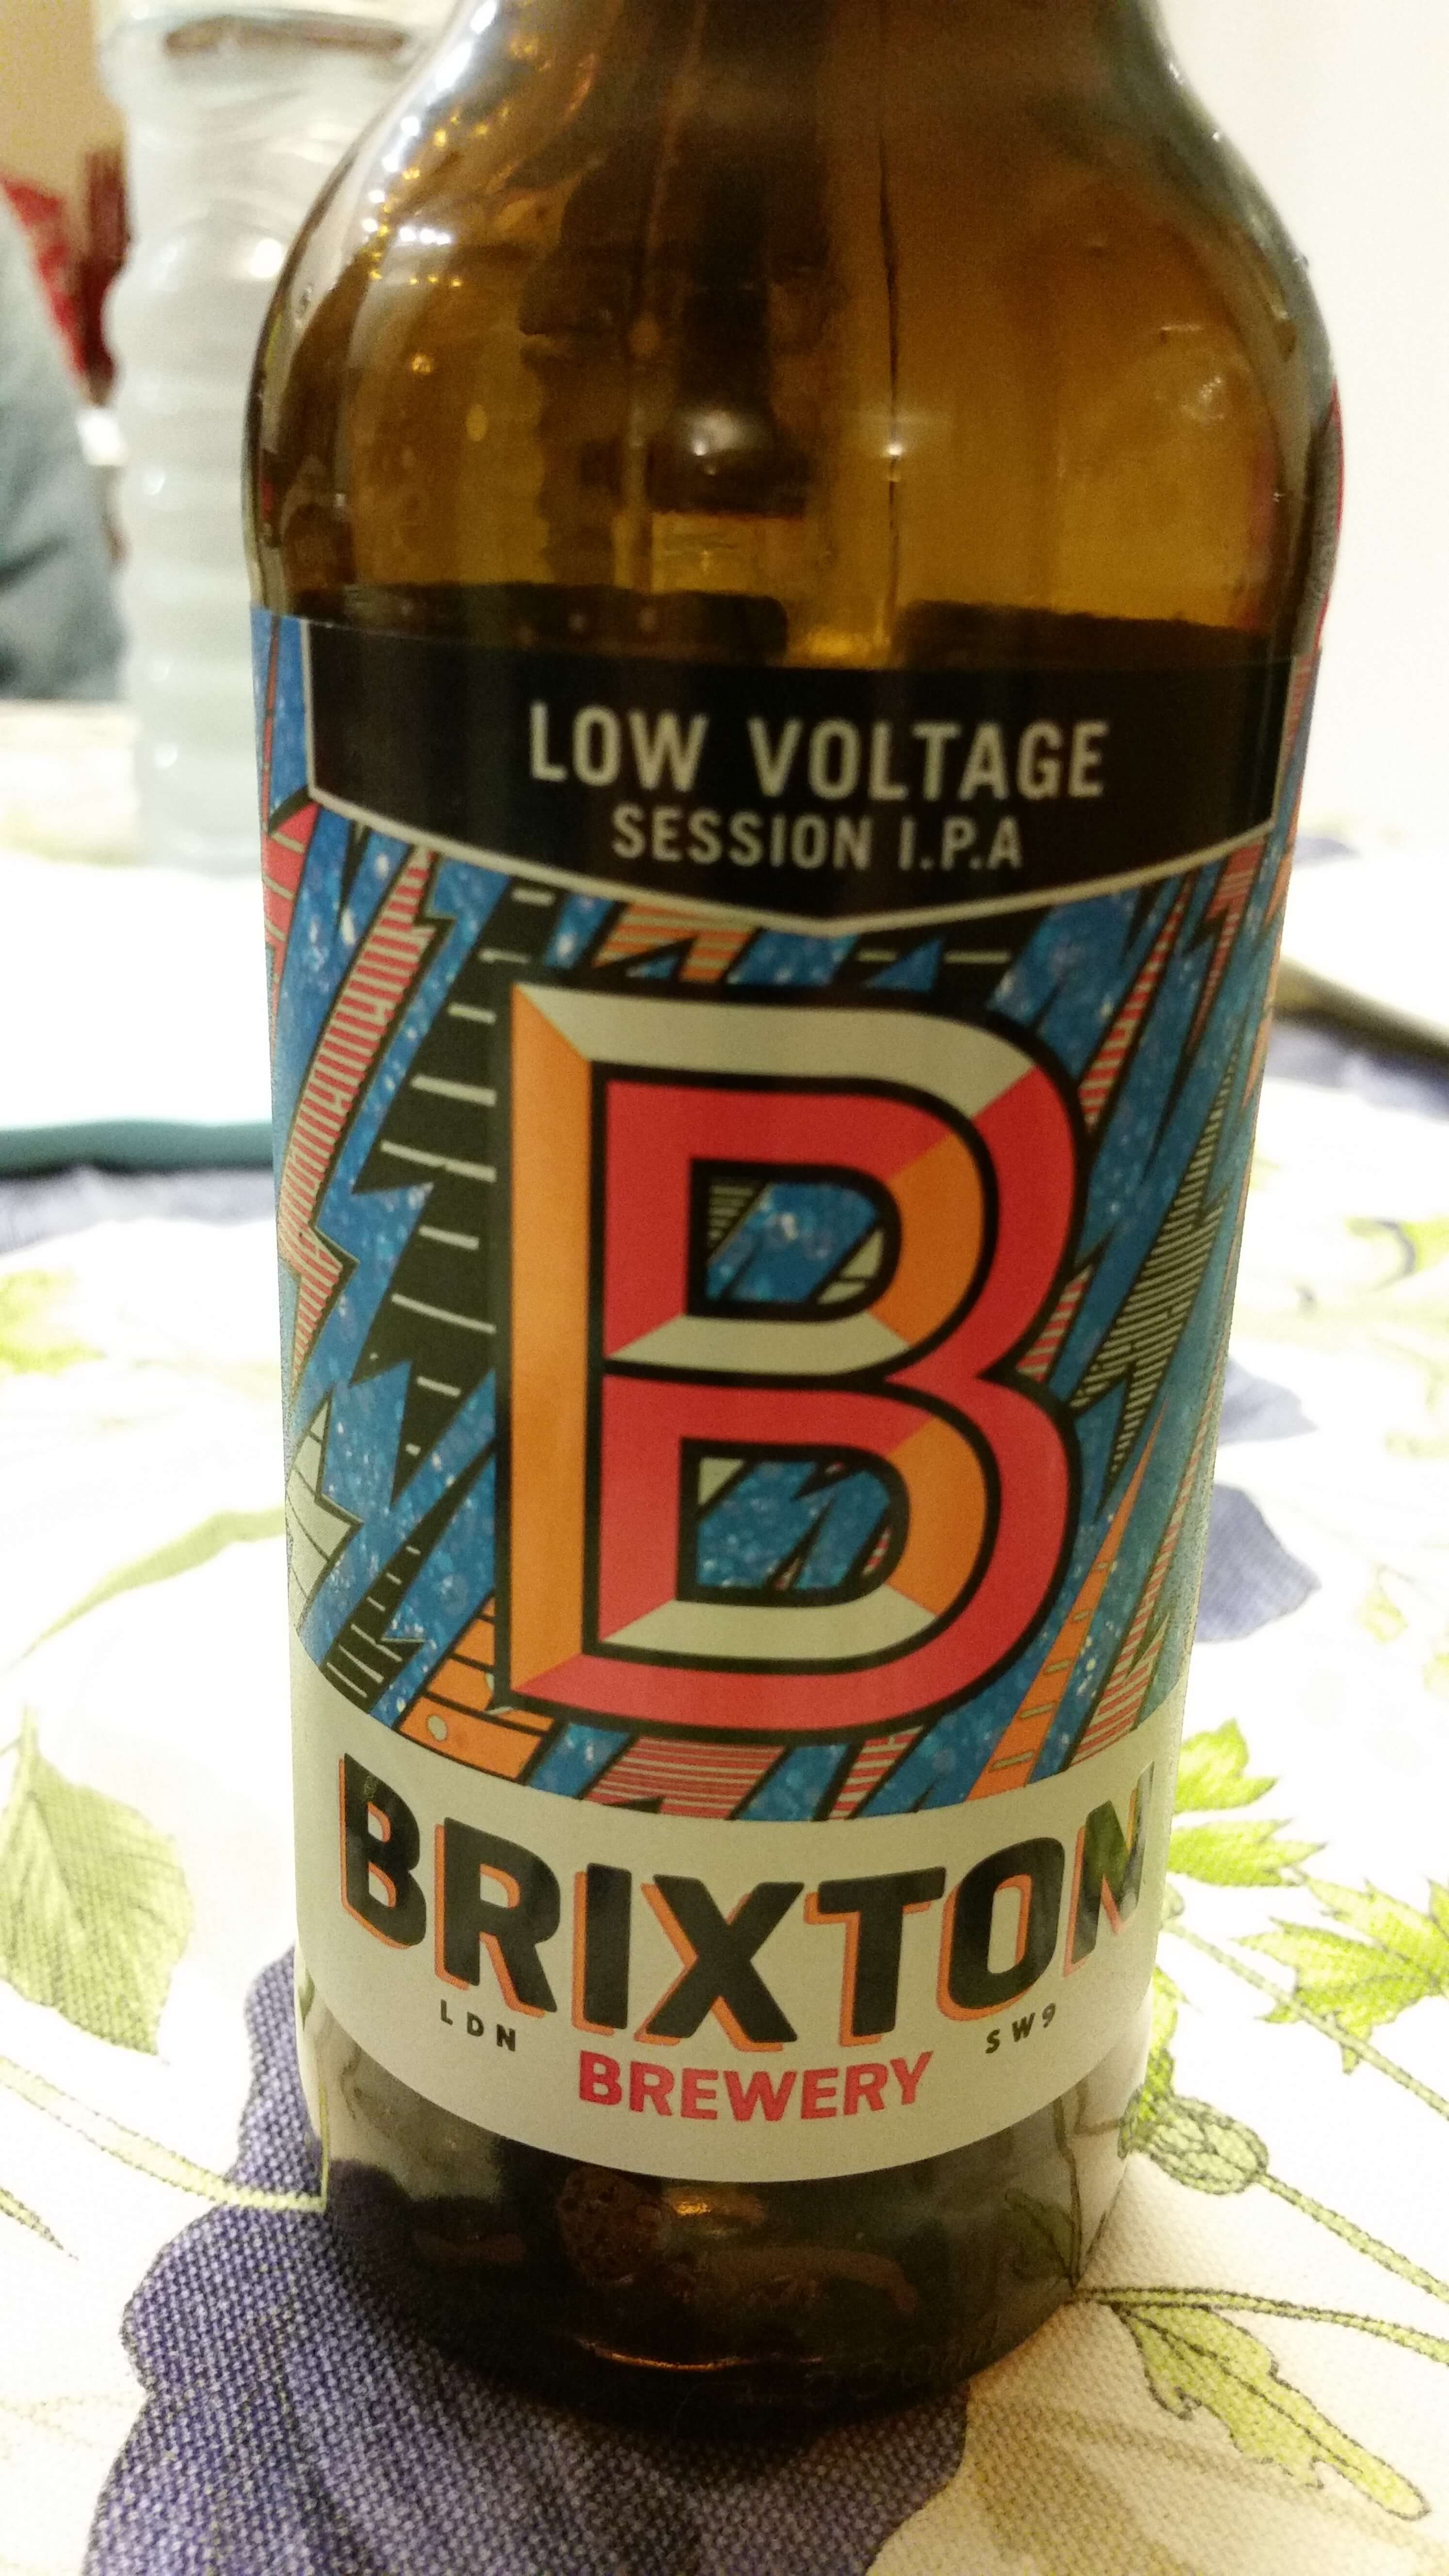 Low Voltage Session IPA, Brixton Brewery